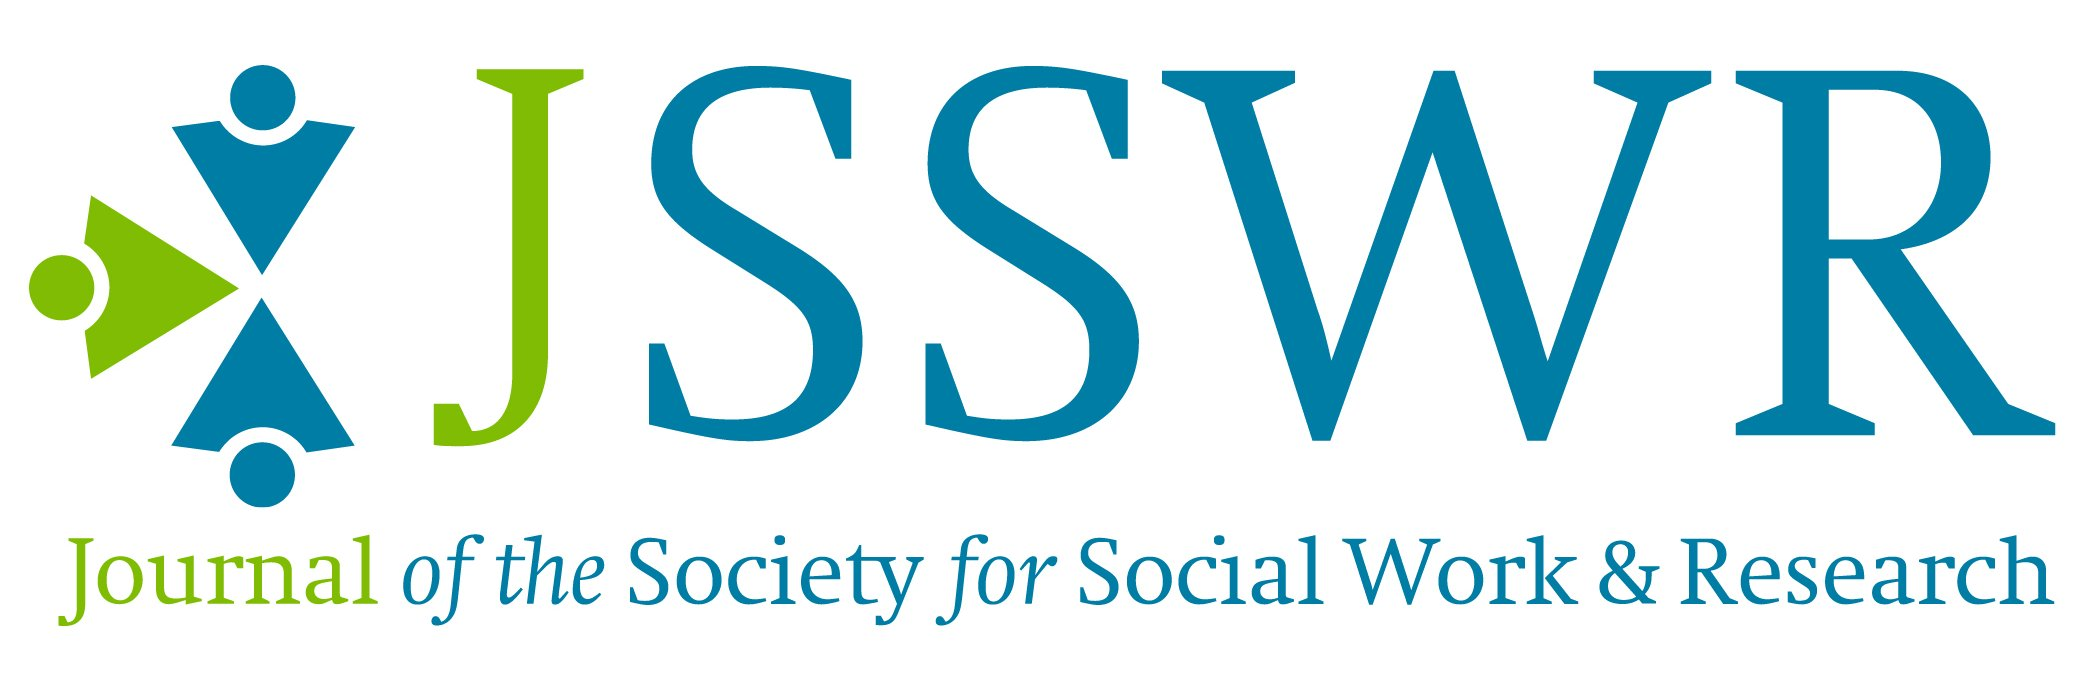 All 2018 JSSWR articles are now available to #readfree, including the special issue on the Grand Challenge to Ensur… https://t.co/w4cjhpbgSa